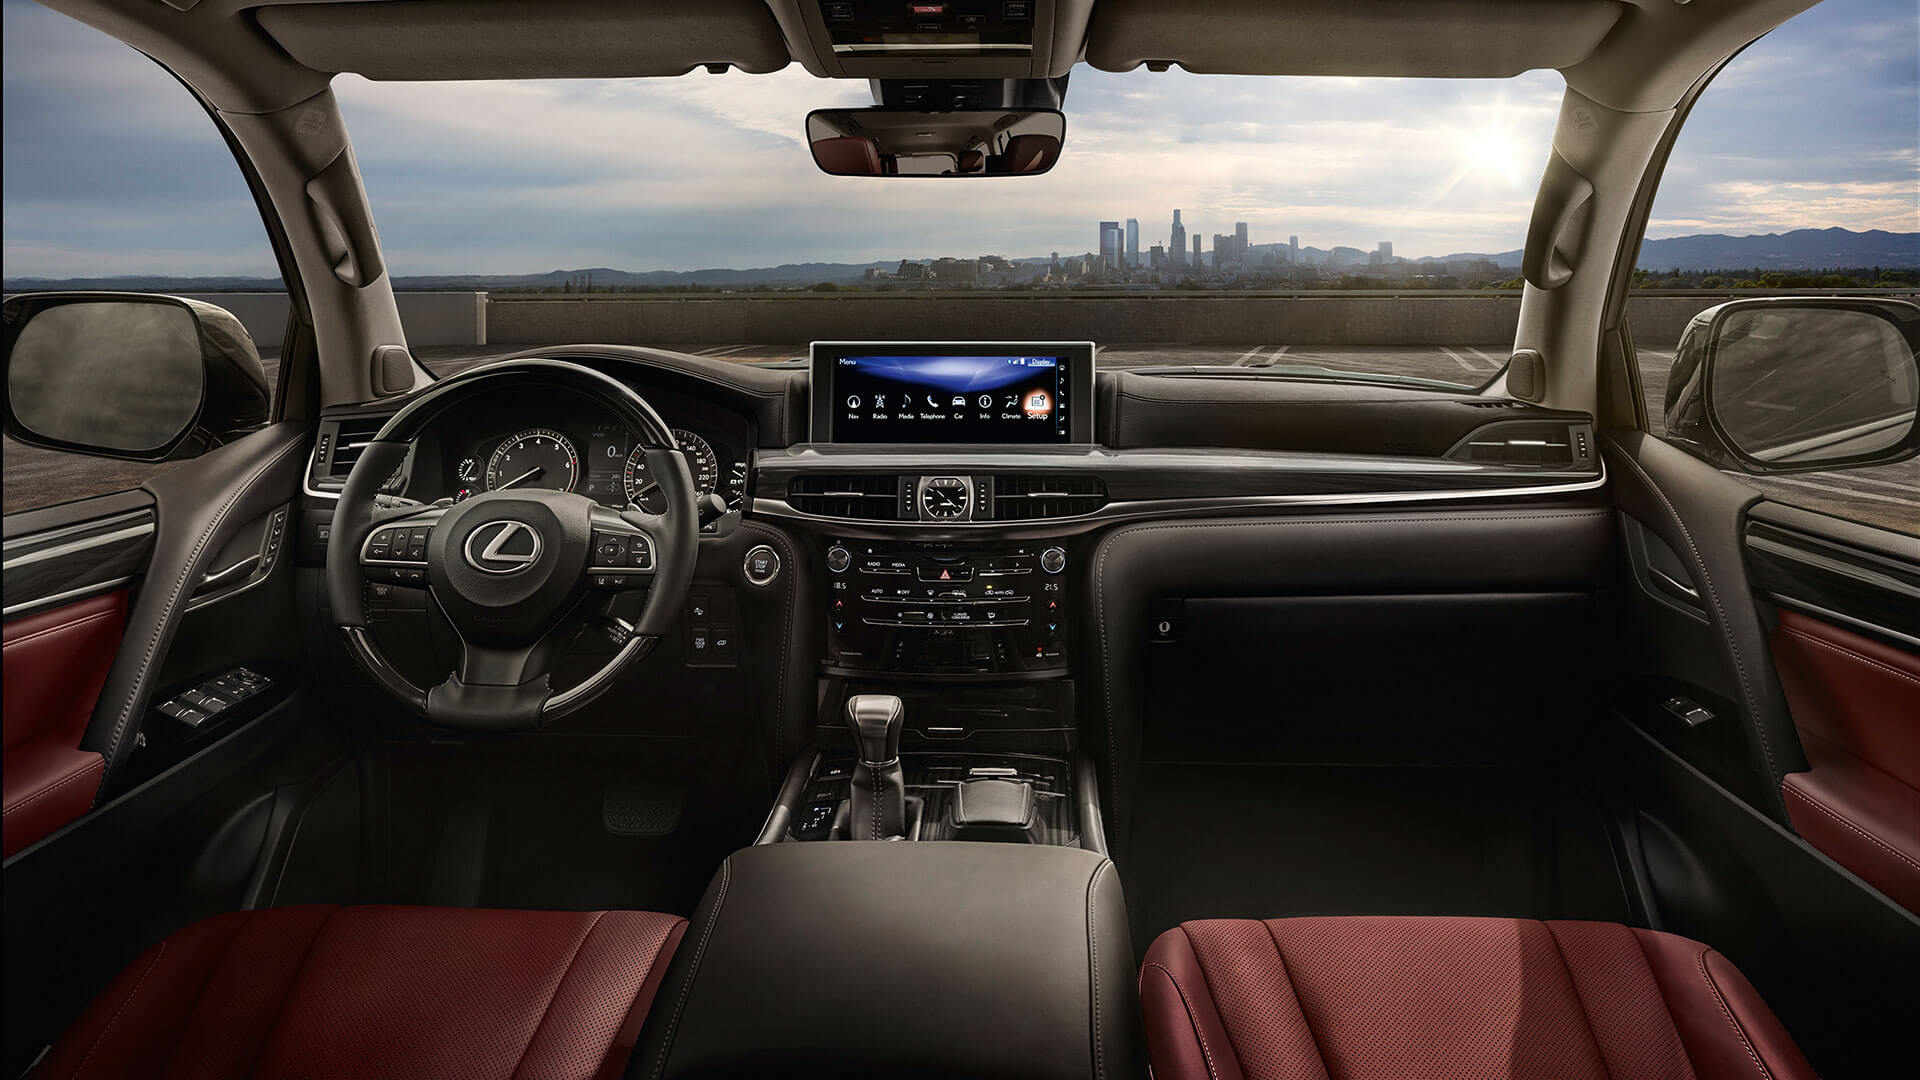 2017 lexus lx gallery 002 interior